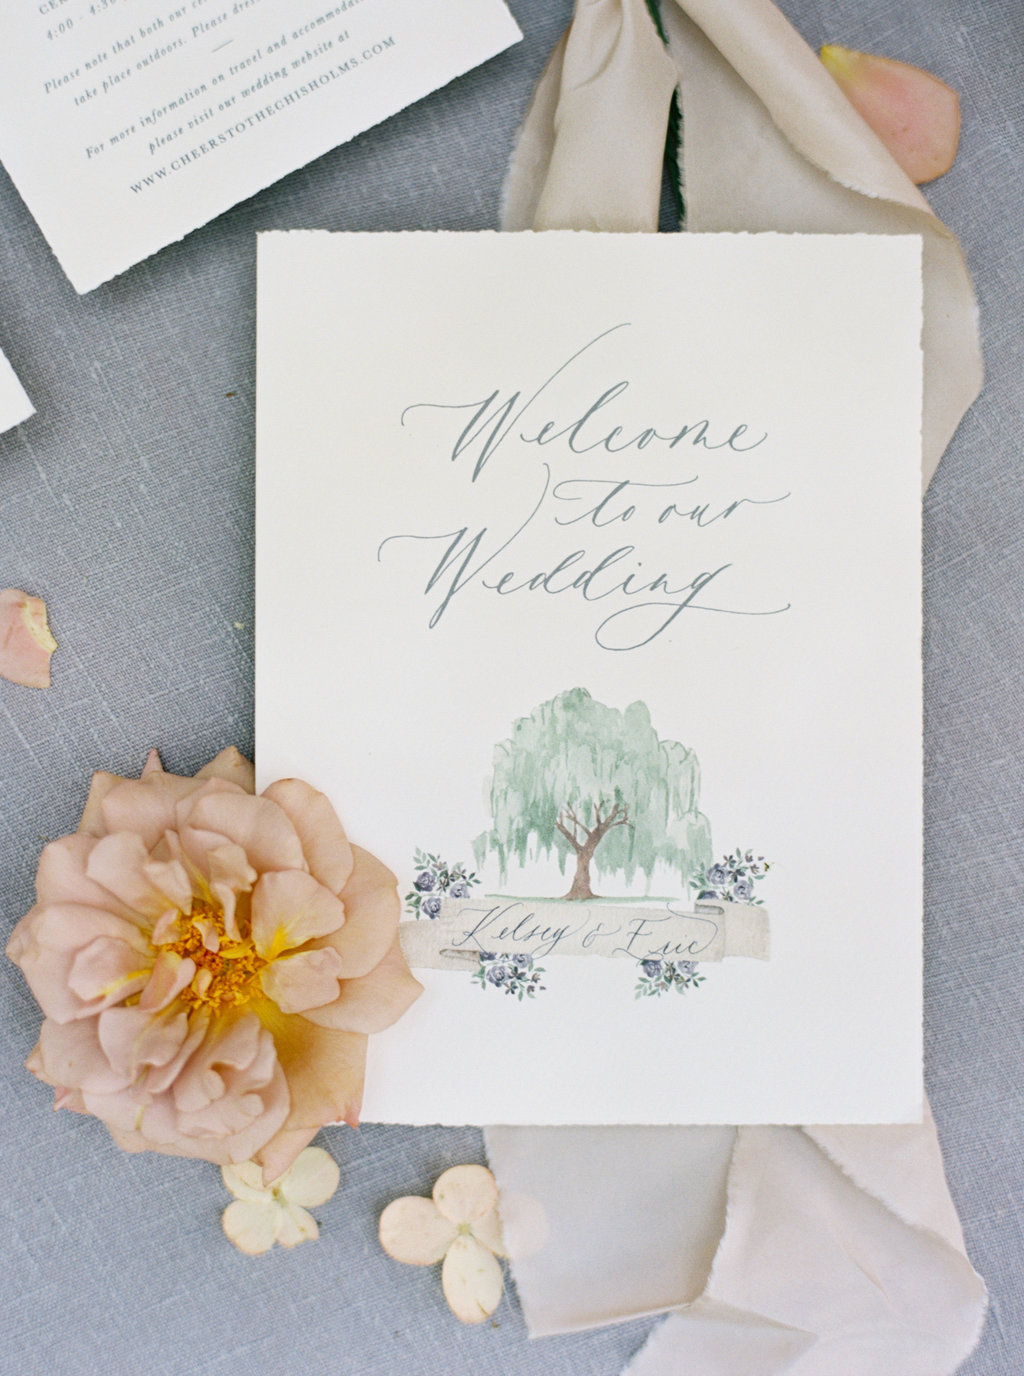 Custom wedding program with calligraphy and watercolor.